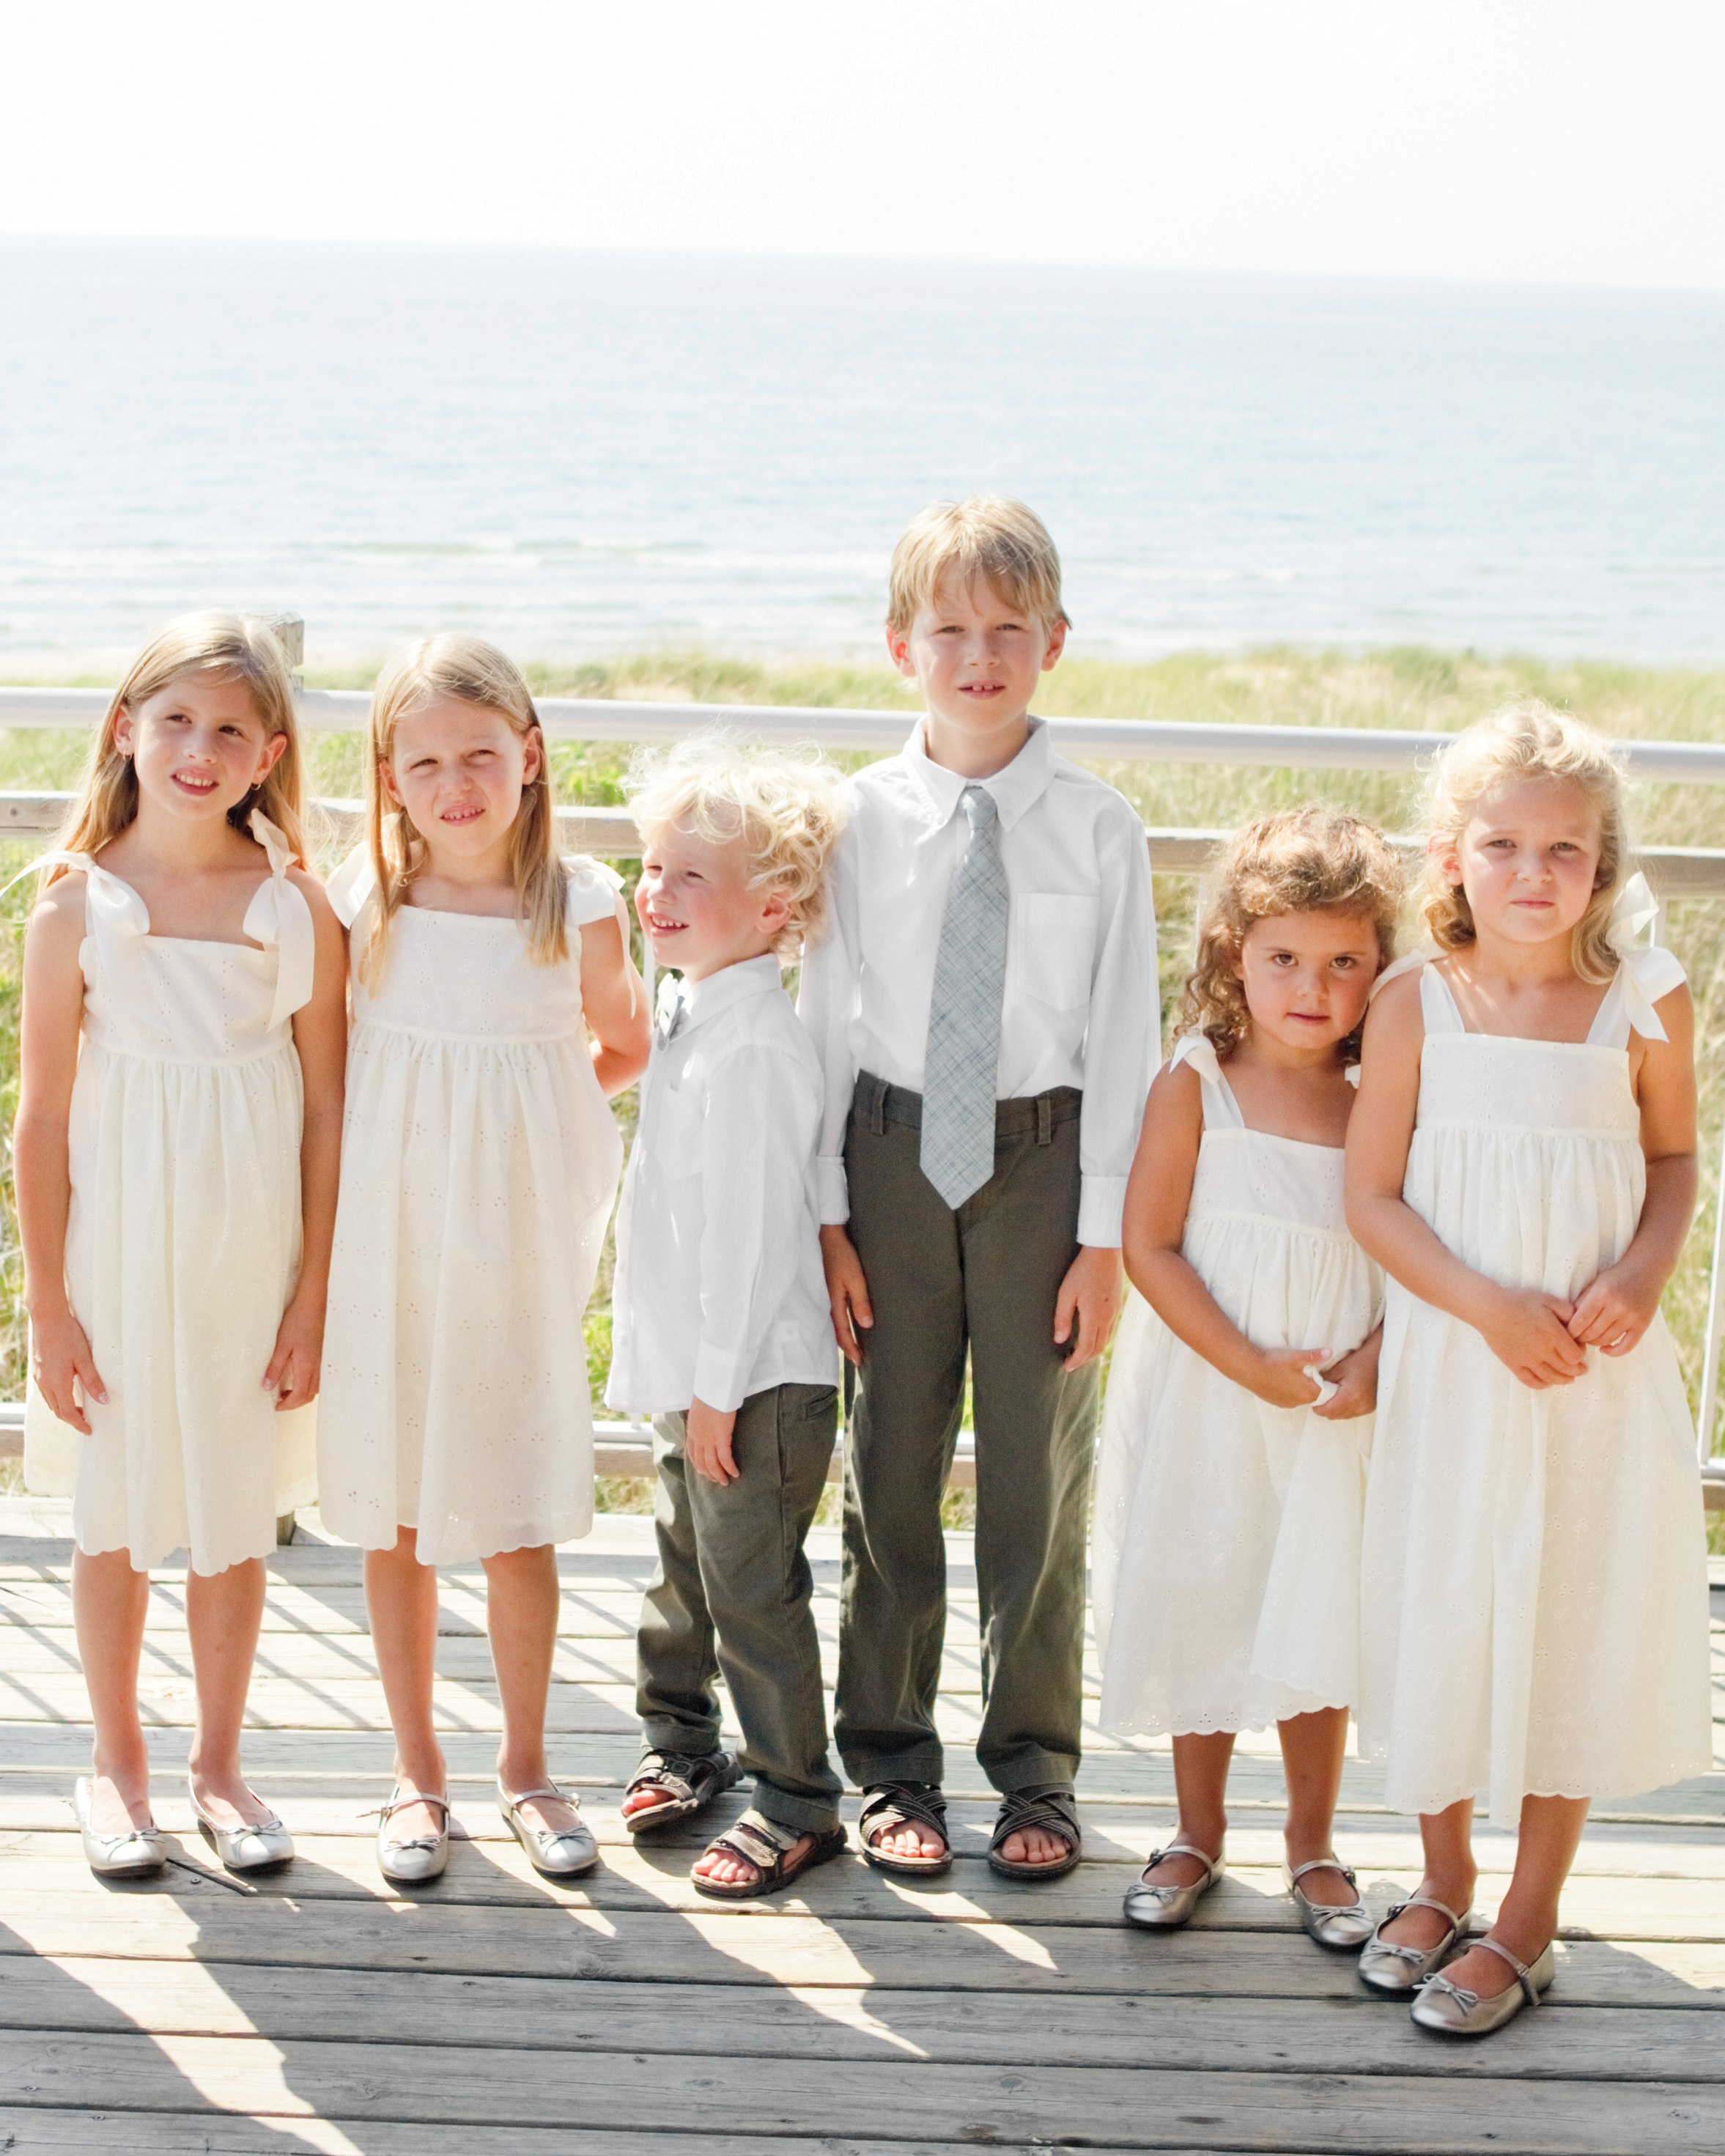 The Flower Girls and Ring Bearers